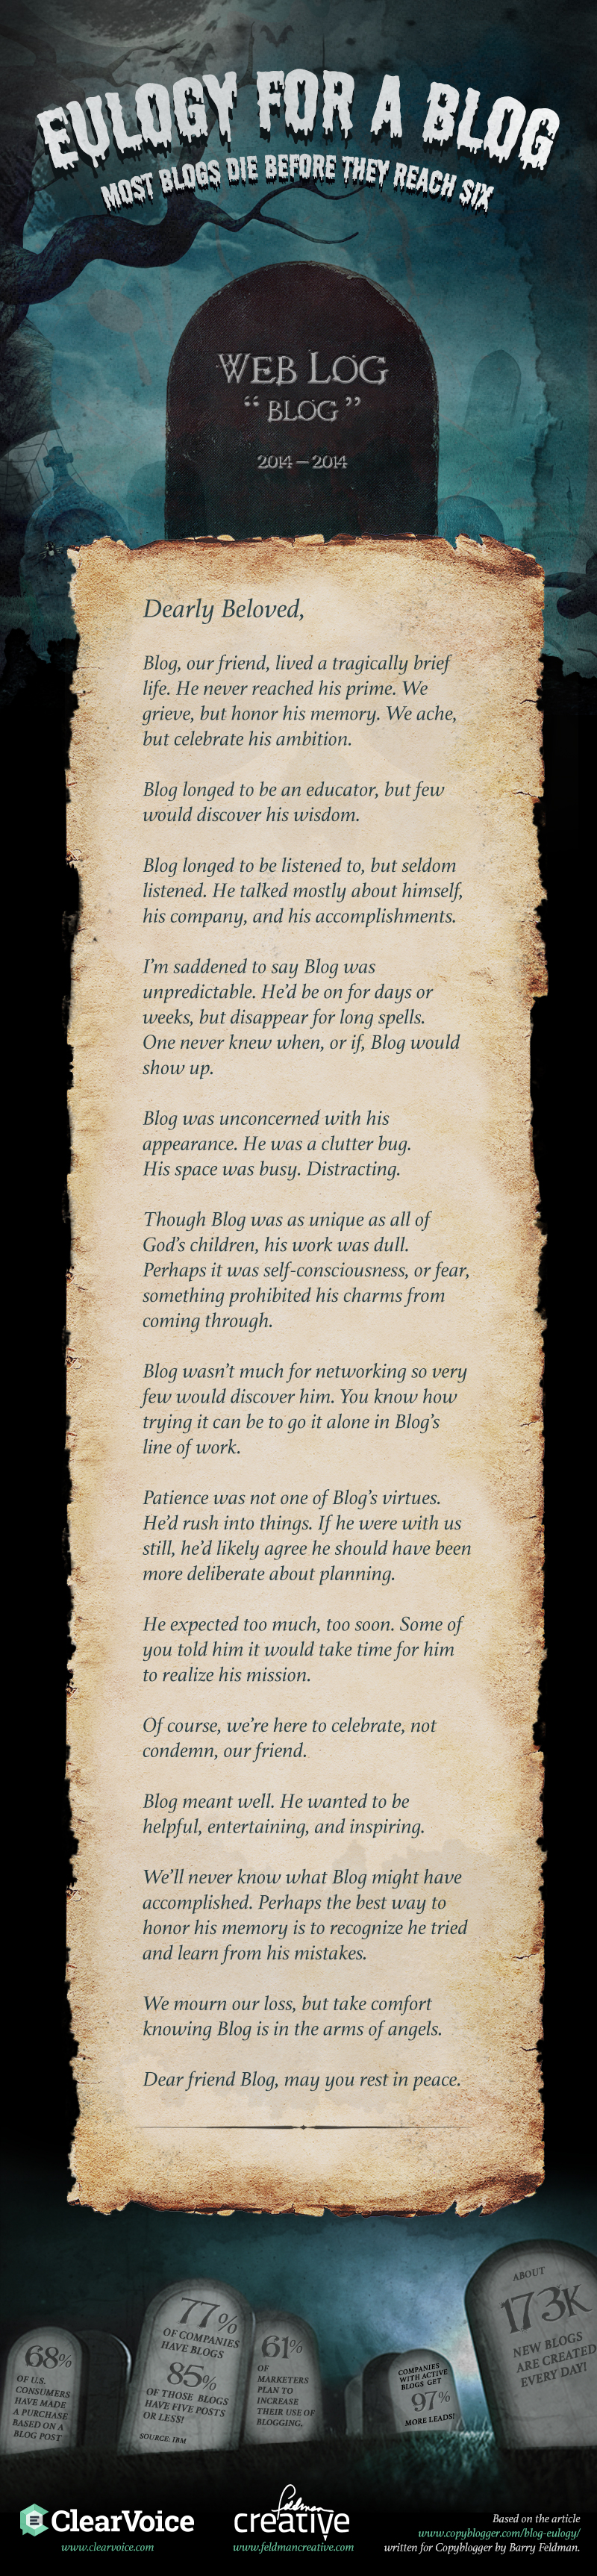 The Short Life and Tragic Death of The Blog